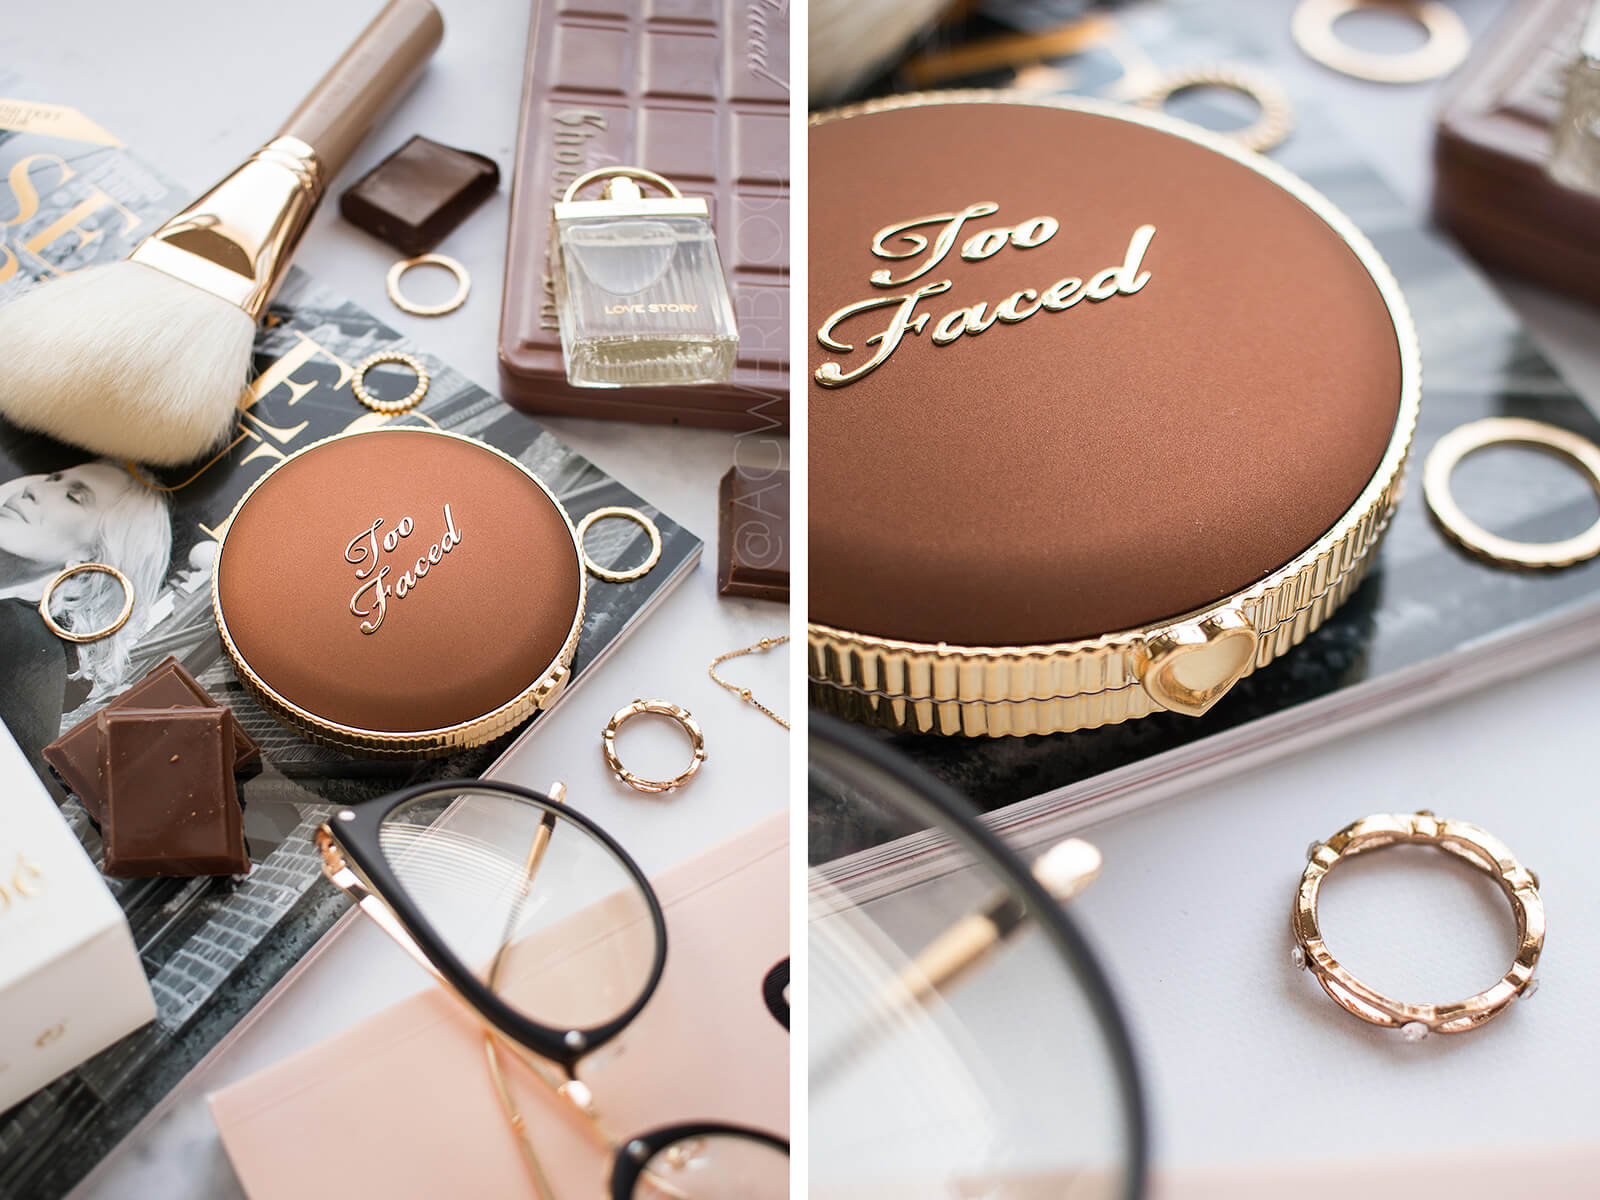 Too Faced Chocolate Soleil cena